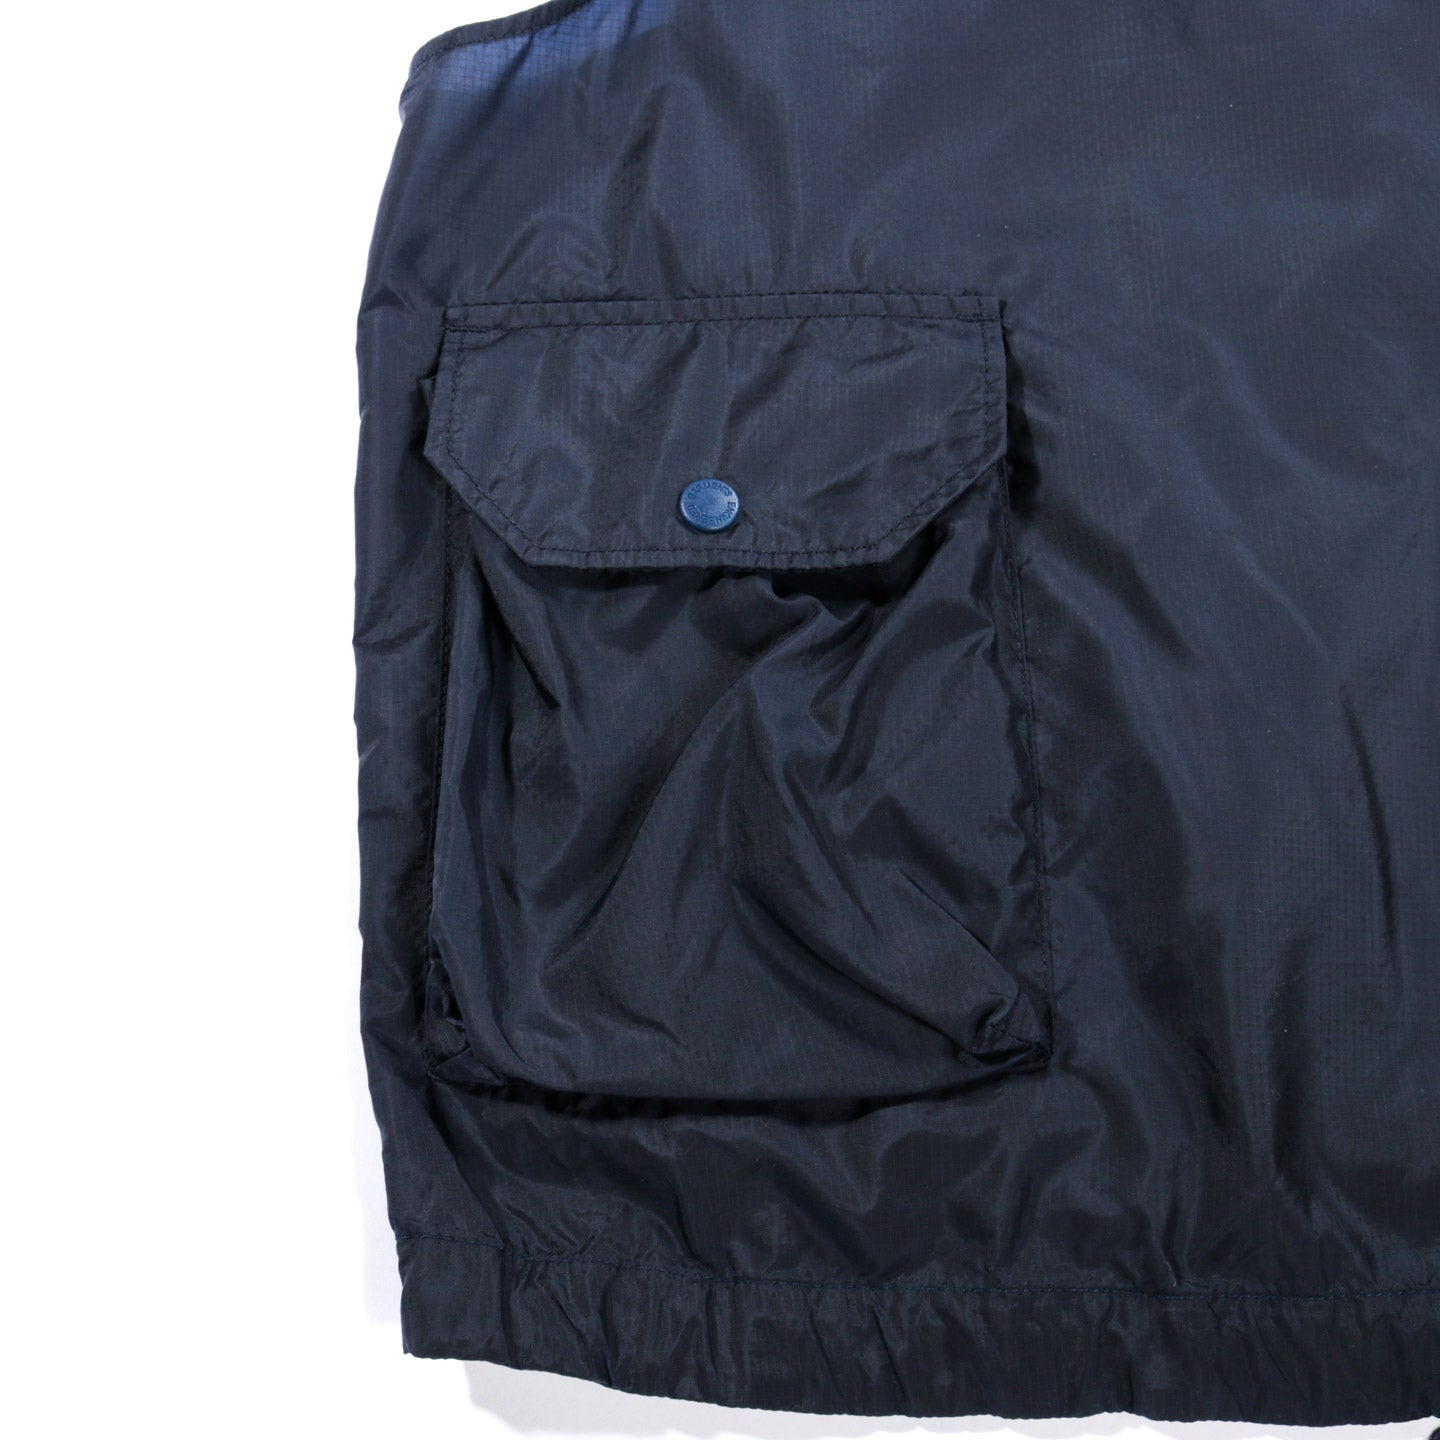 ENGINEERED GARMENTS SHOULDER POUCH ROYAL PACK CLOTH